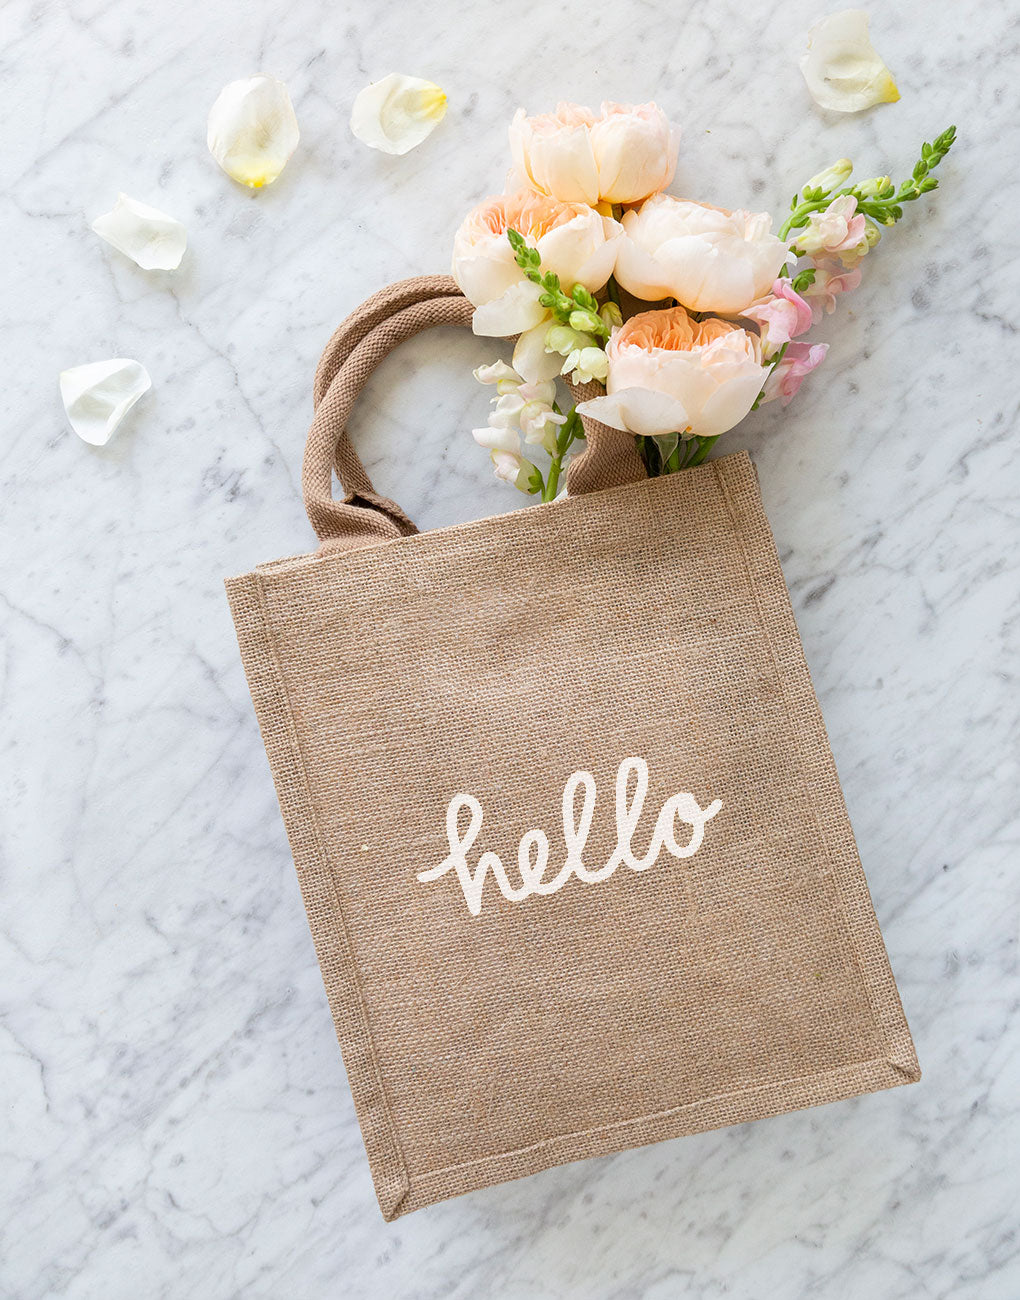 Medium Hello Reusable Gift Tote In White Font | The Little Market